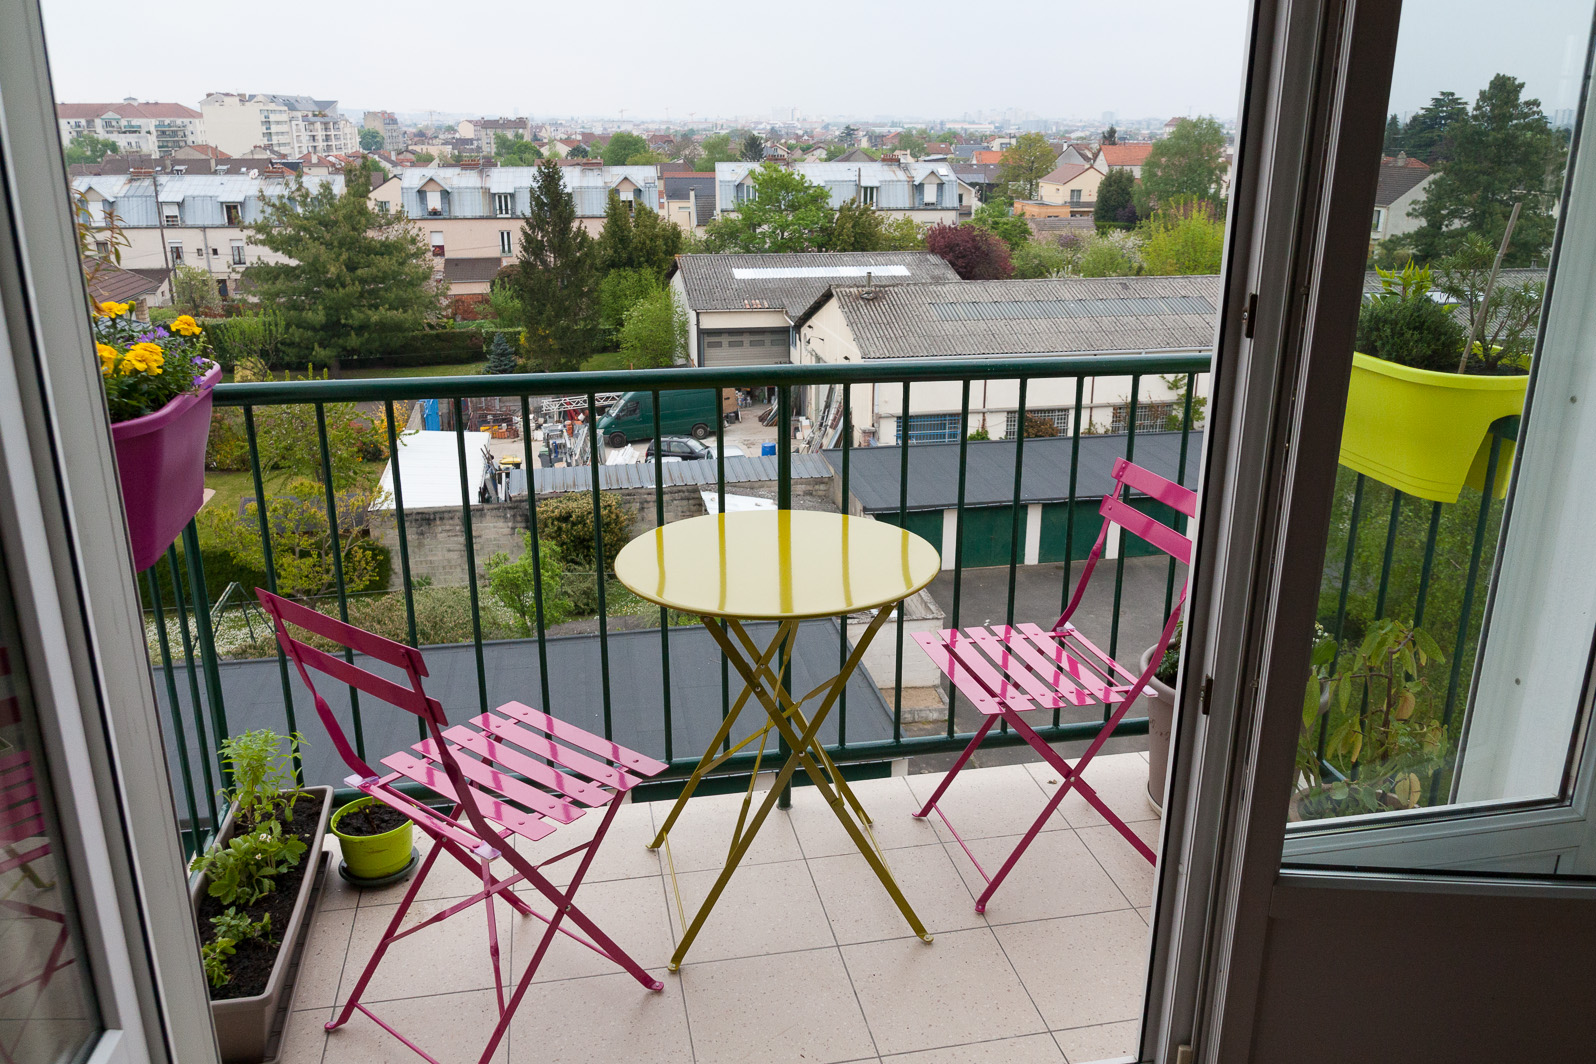 Inspirez vous d 39 id es de d coration et d 39 am nagement petit for Amenagement terrasse balcon appartement